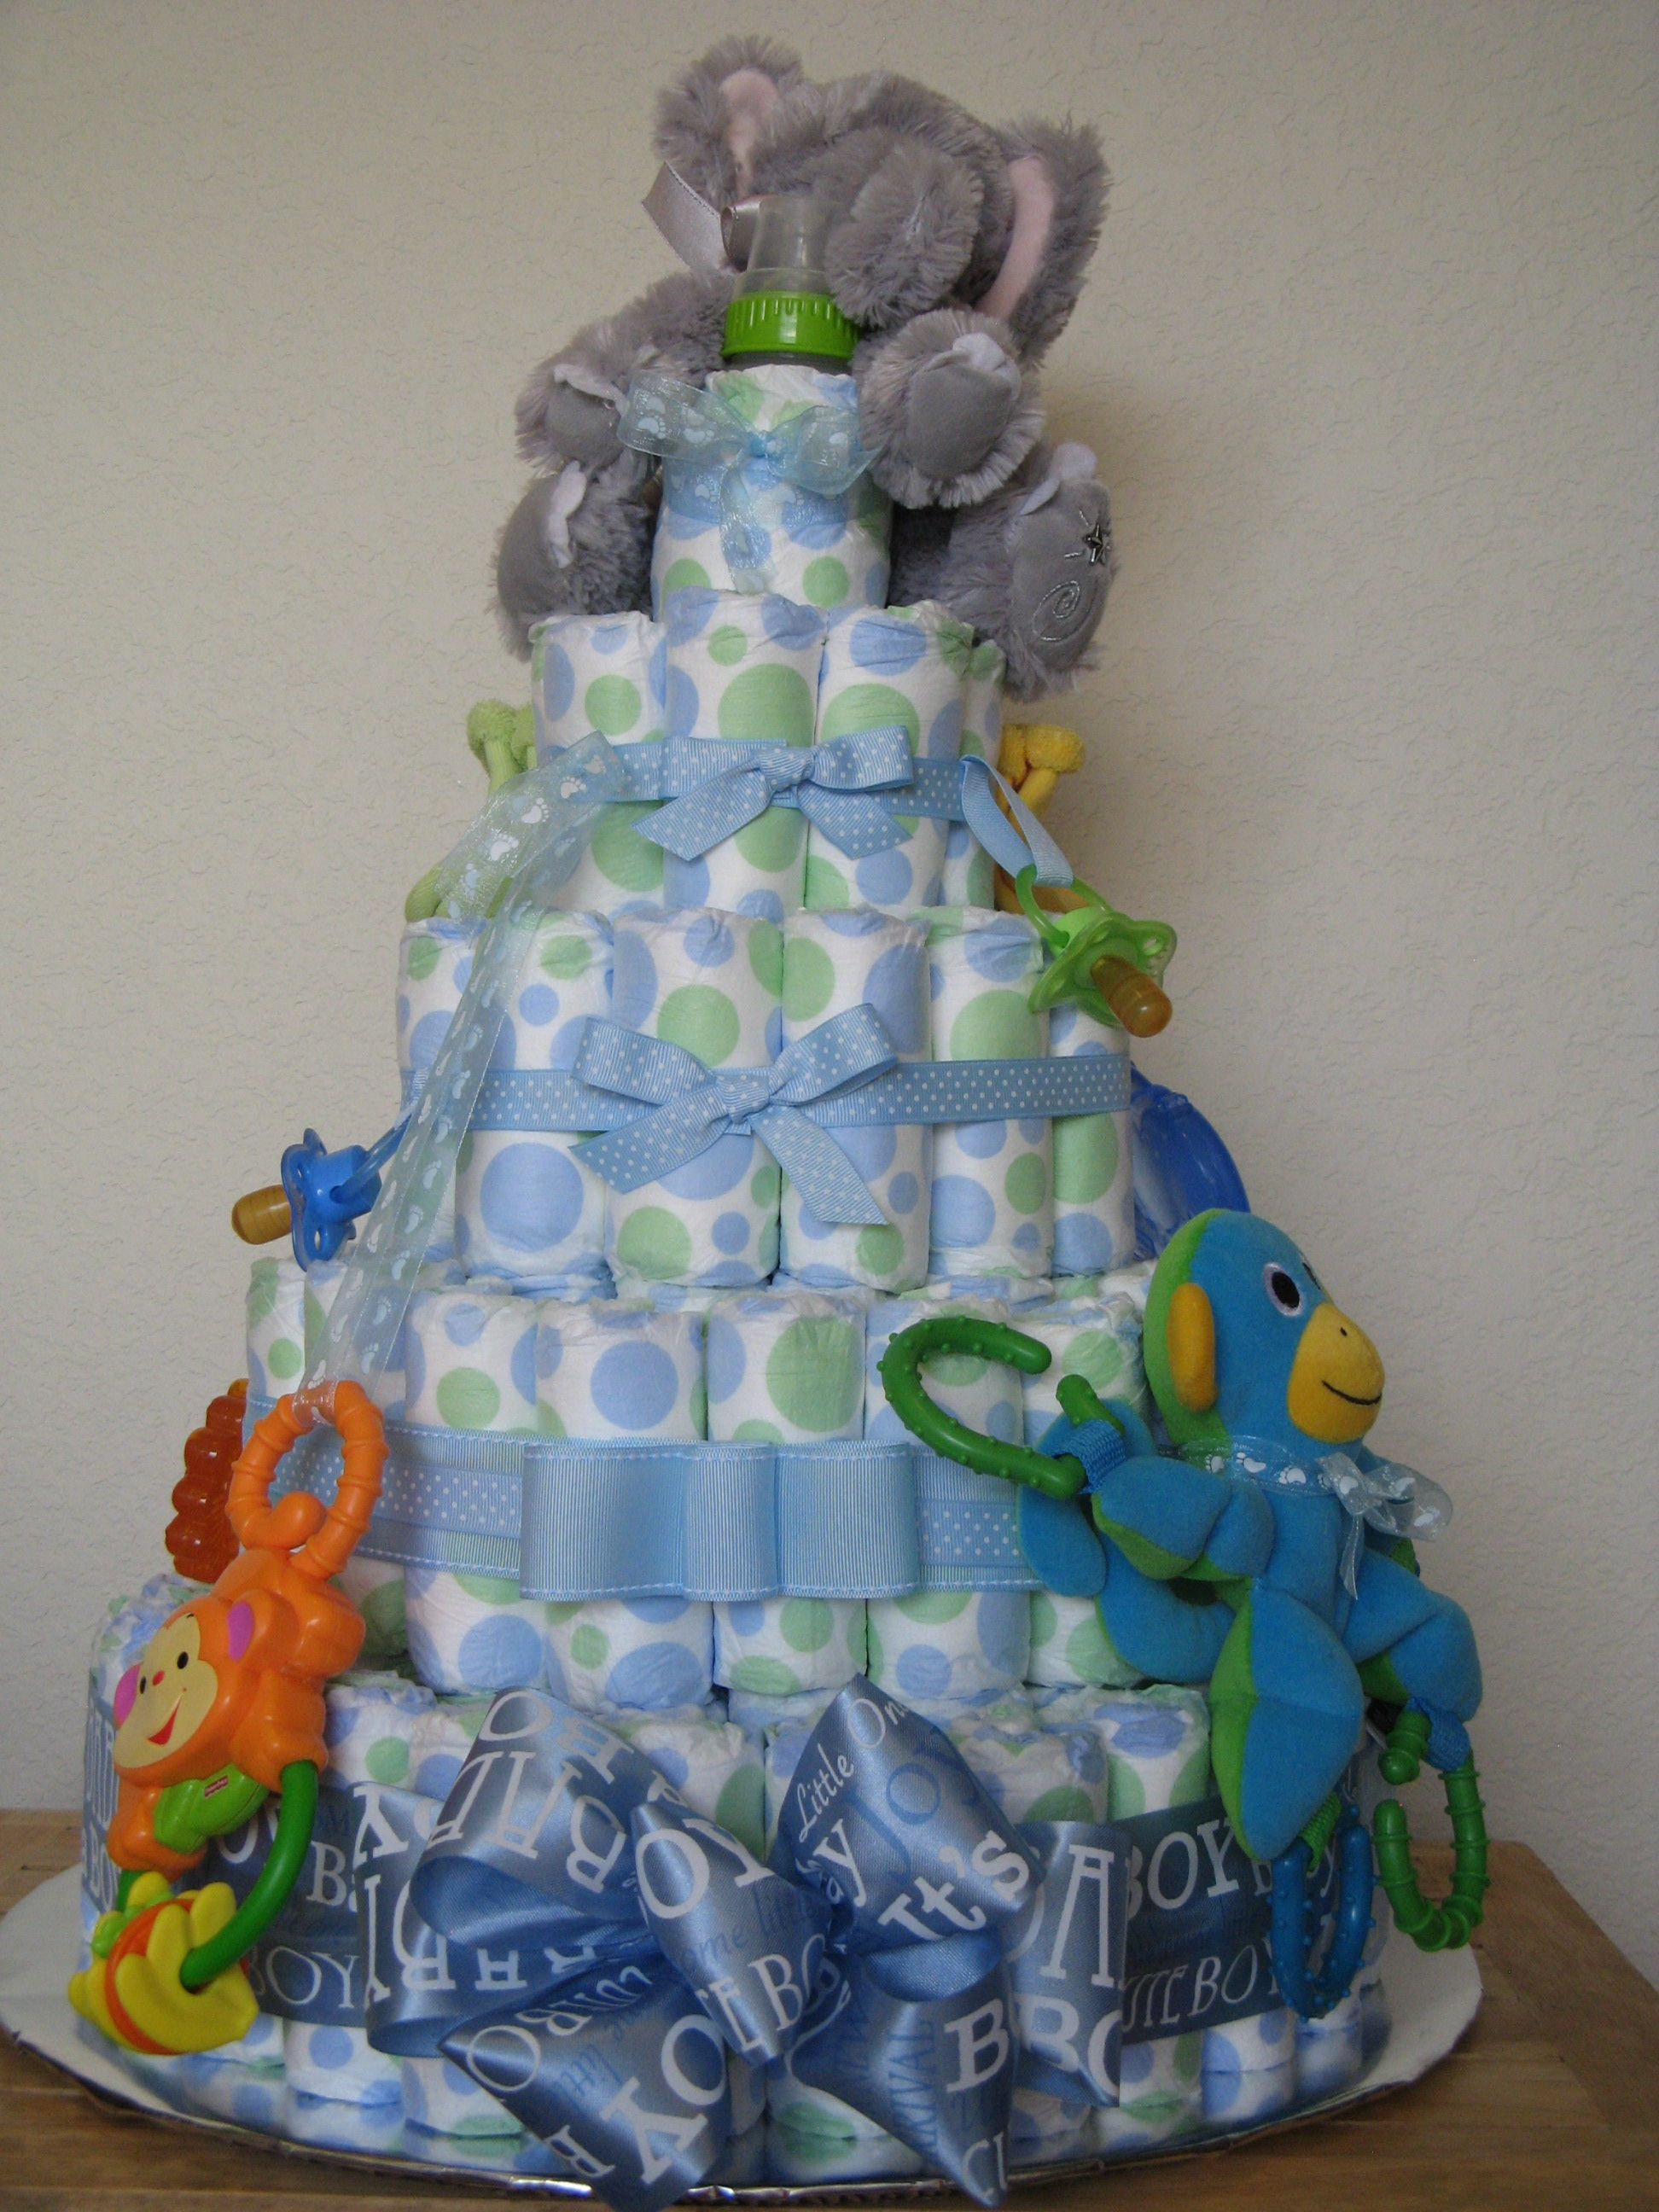 Diaper Cake Ideas For Baby Boy : Pinterest: Discover and save creative ideas